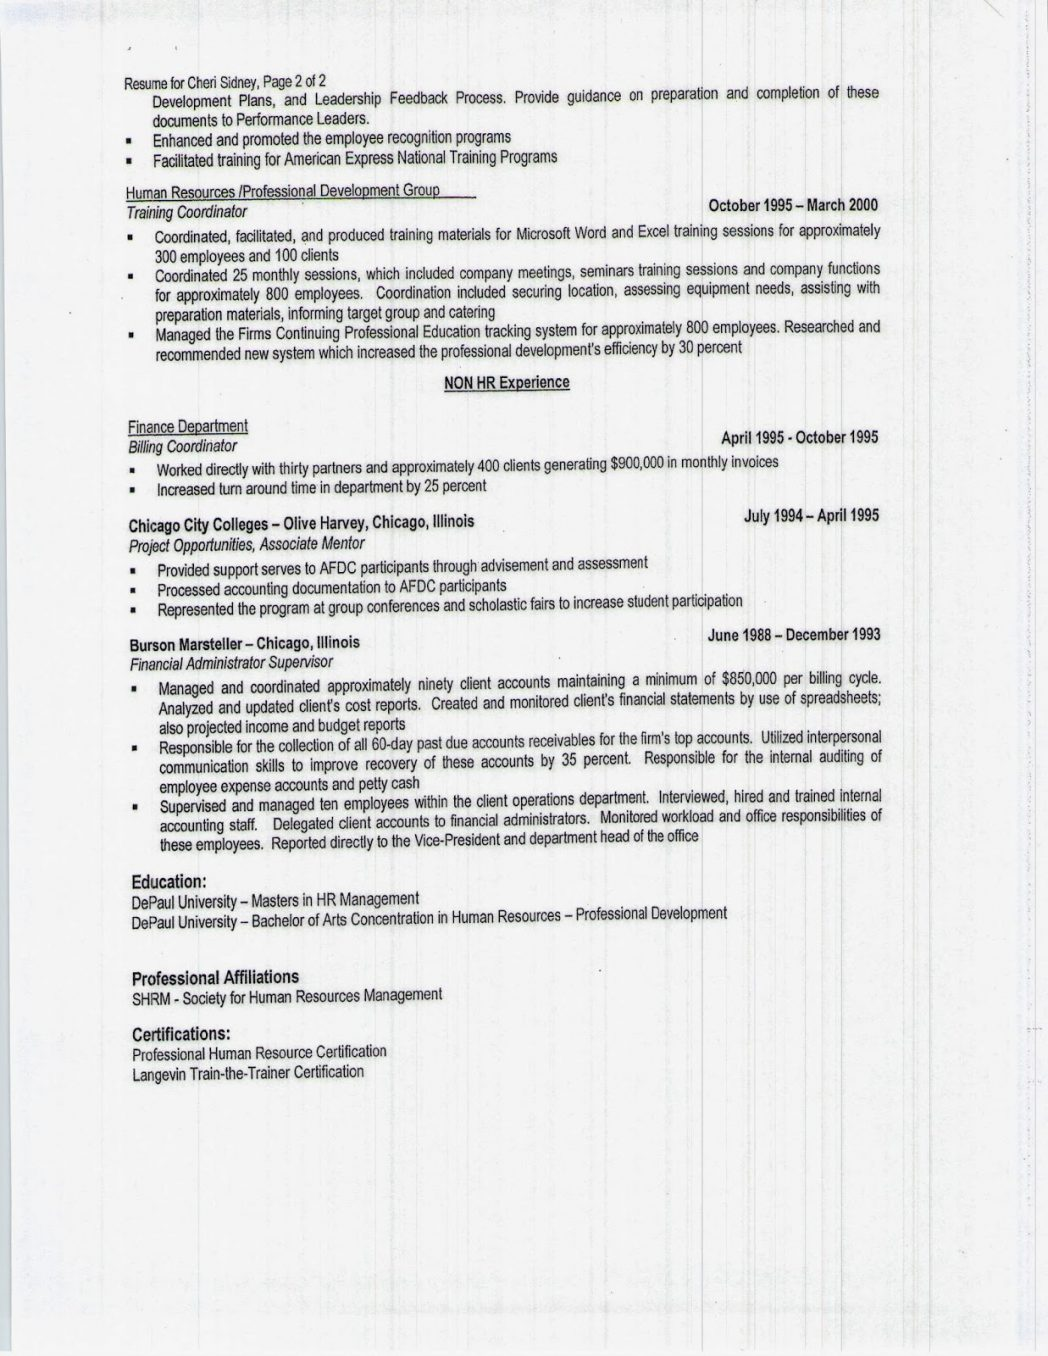 016 Essay Example No Scholarships Scholarship And Travel College School Sidne Colleges With Requirement Texas 1048x1356 Without Stunning Essays In Required For Students Examples Full